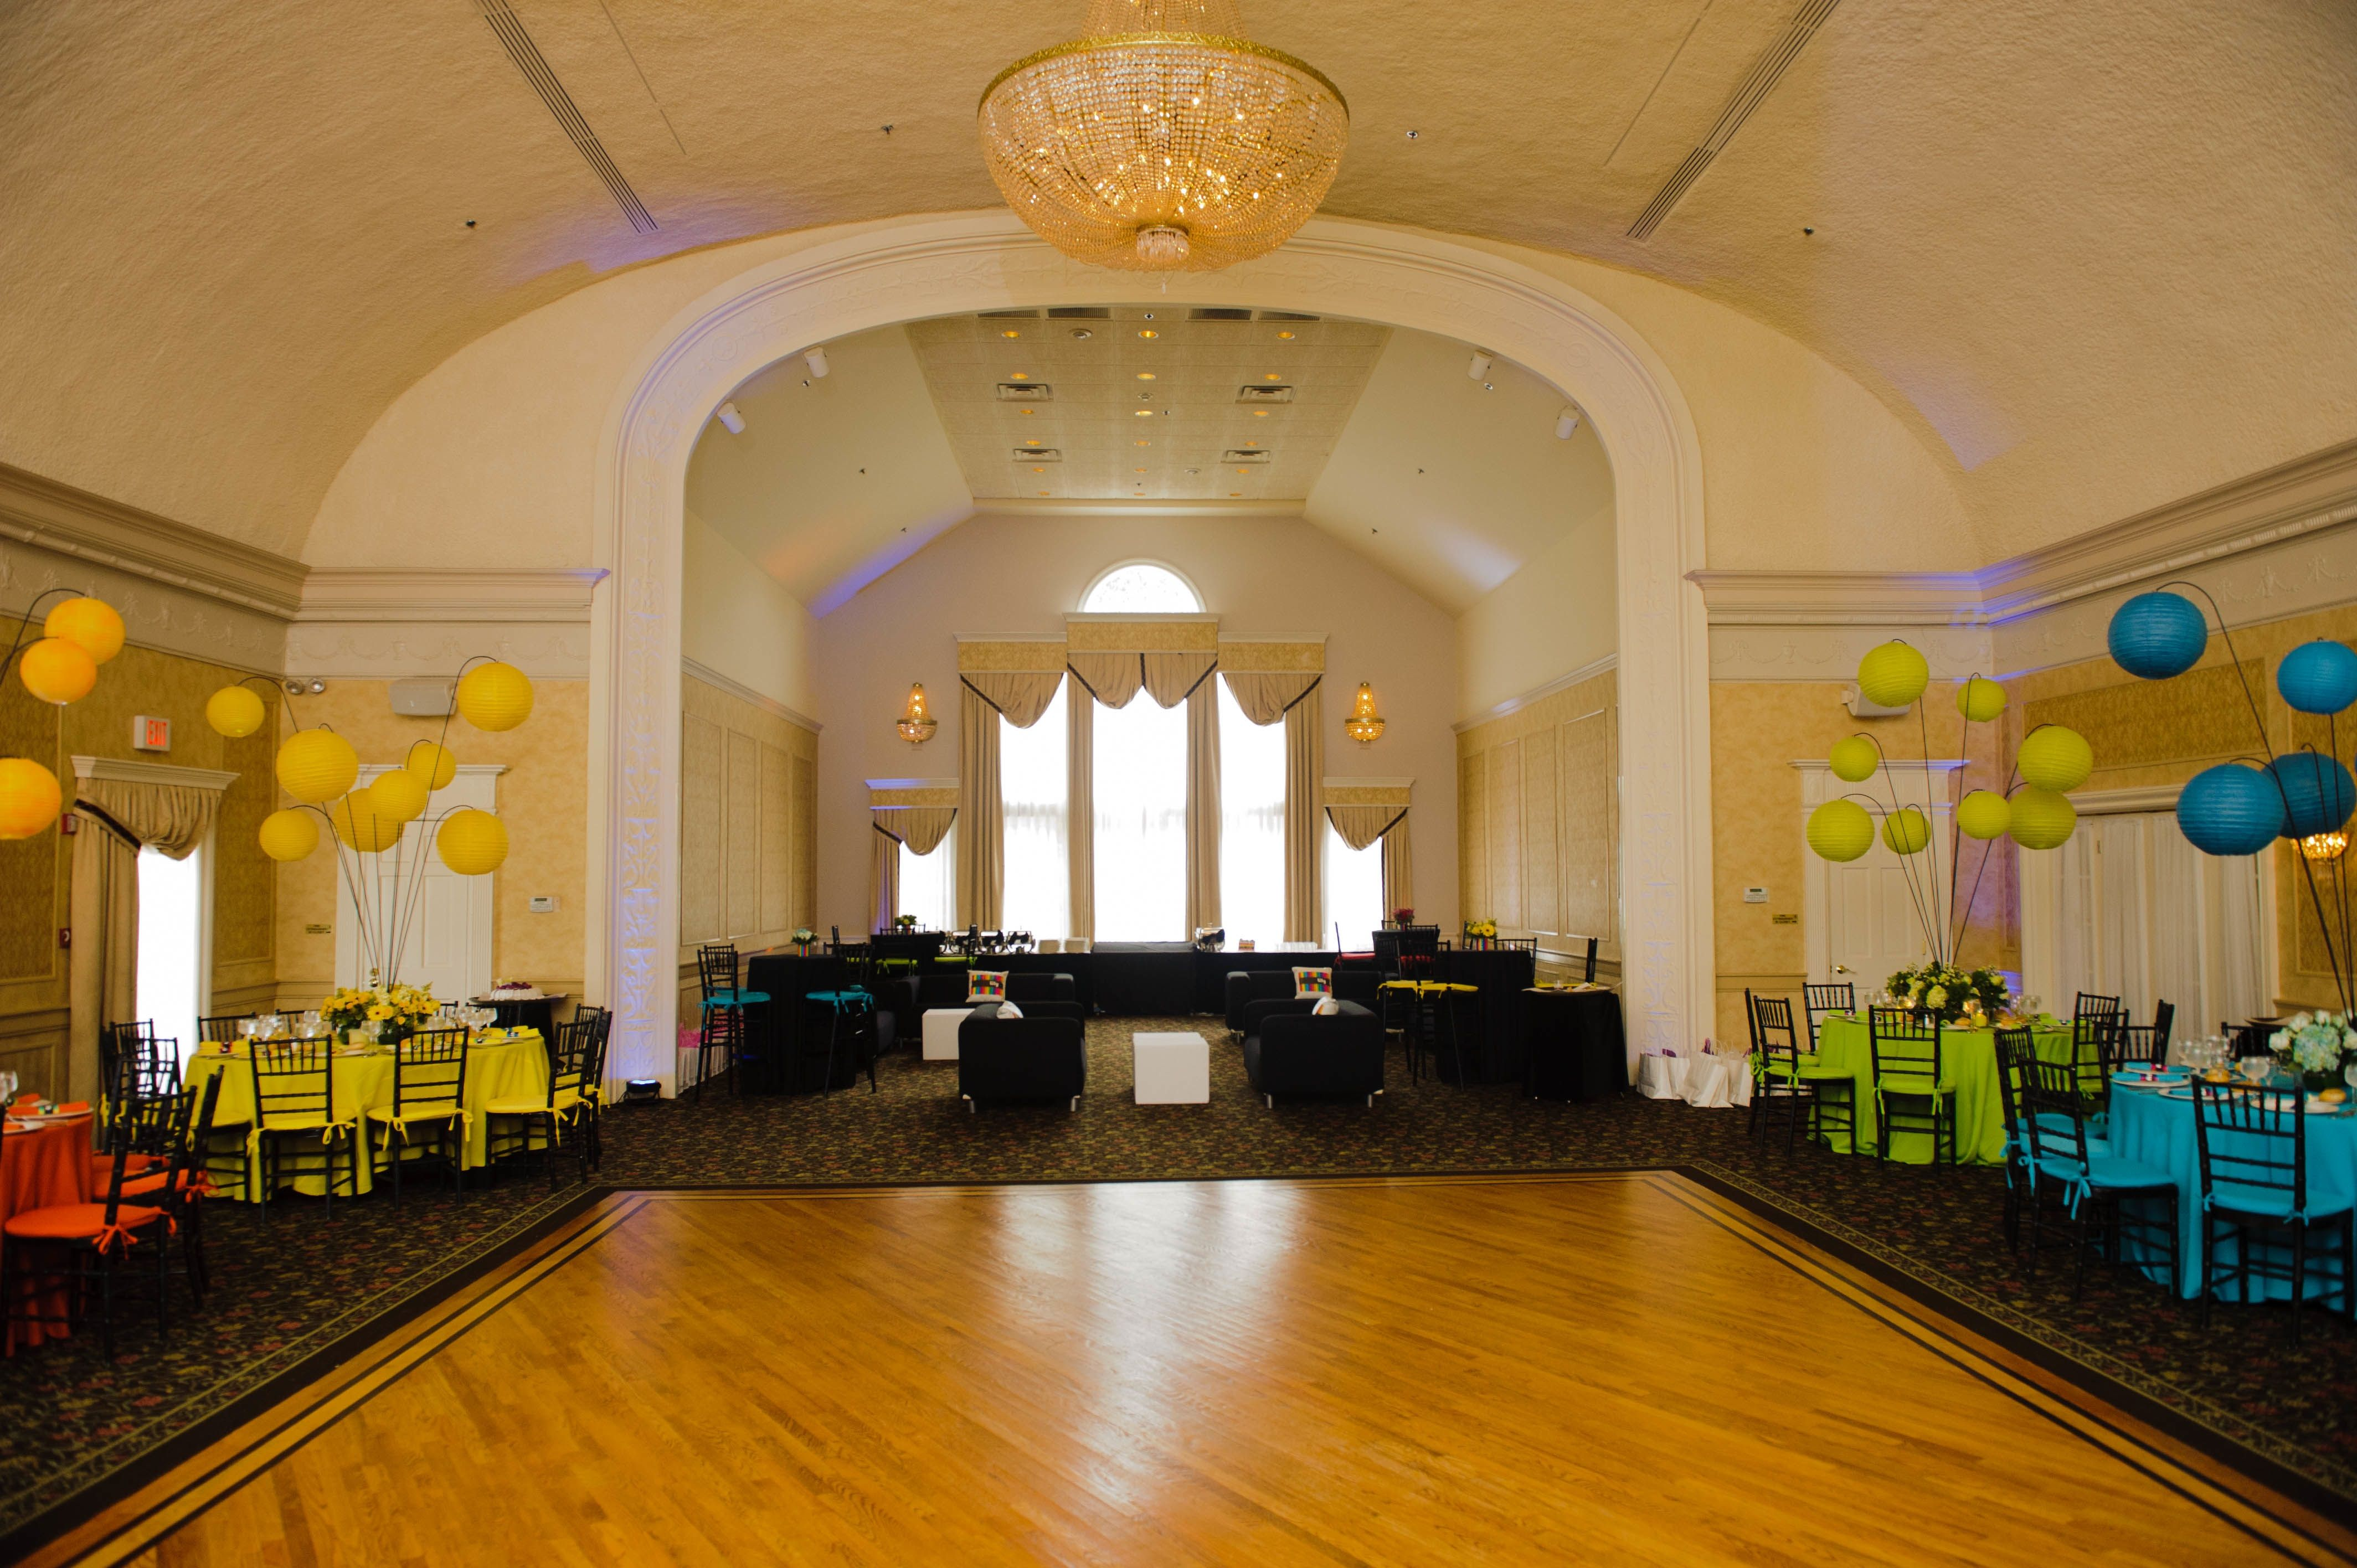 Lily S Bat Mitzvah Celebration That Took Place At Maplewood Country Club